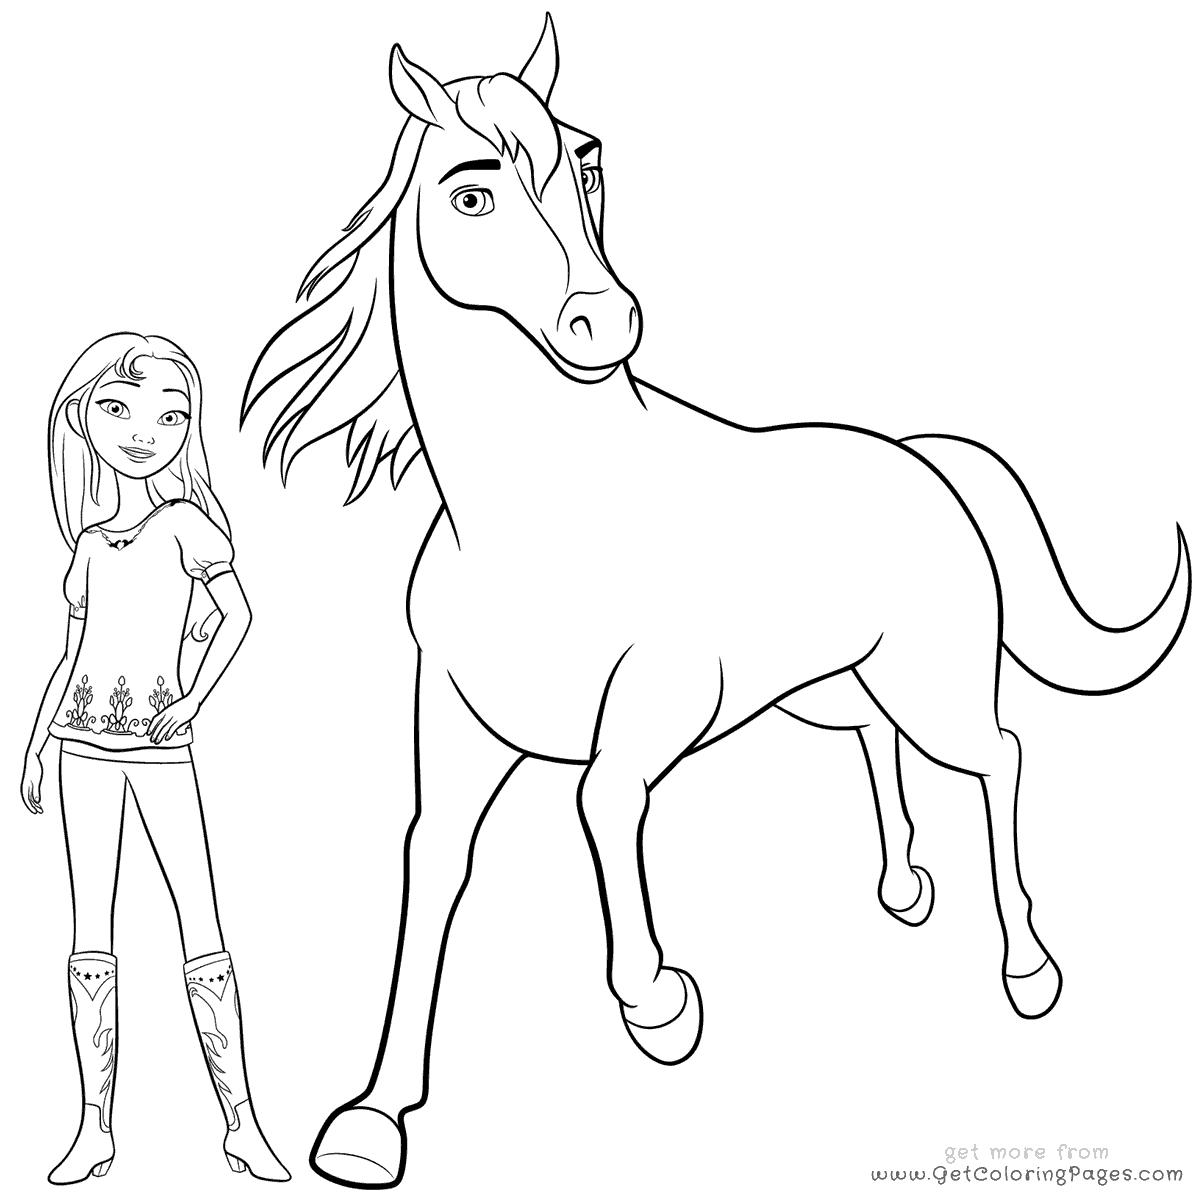 horse print out coloring pages spirit horse coloring pages free coloring for kids 2019 coloring pages horse out print